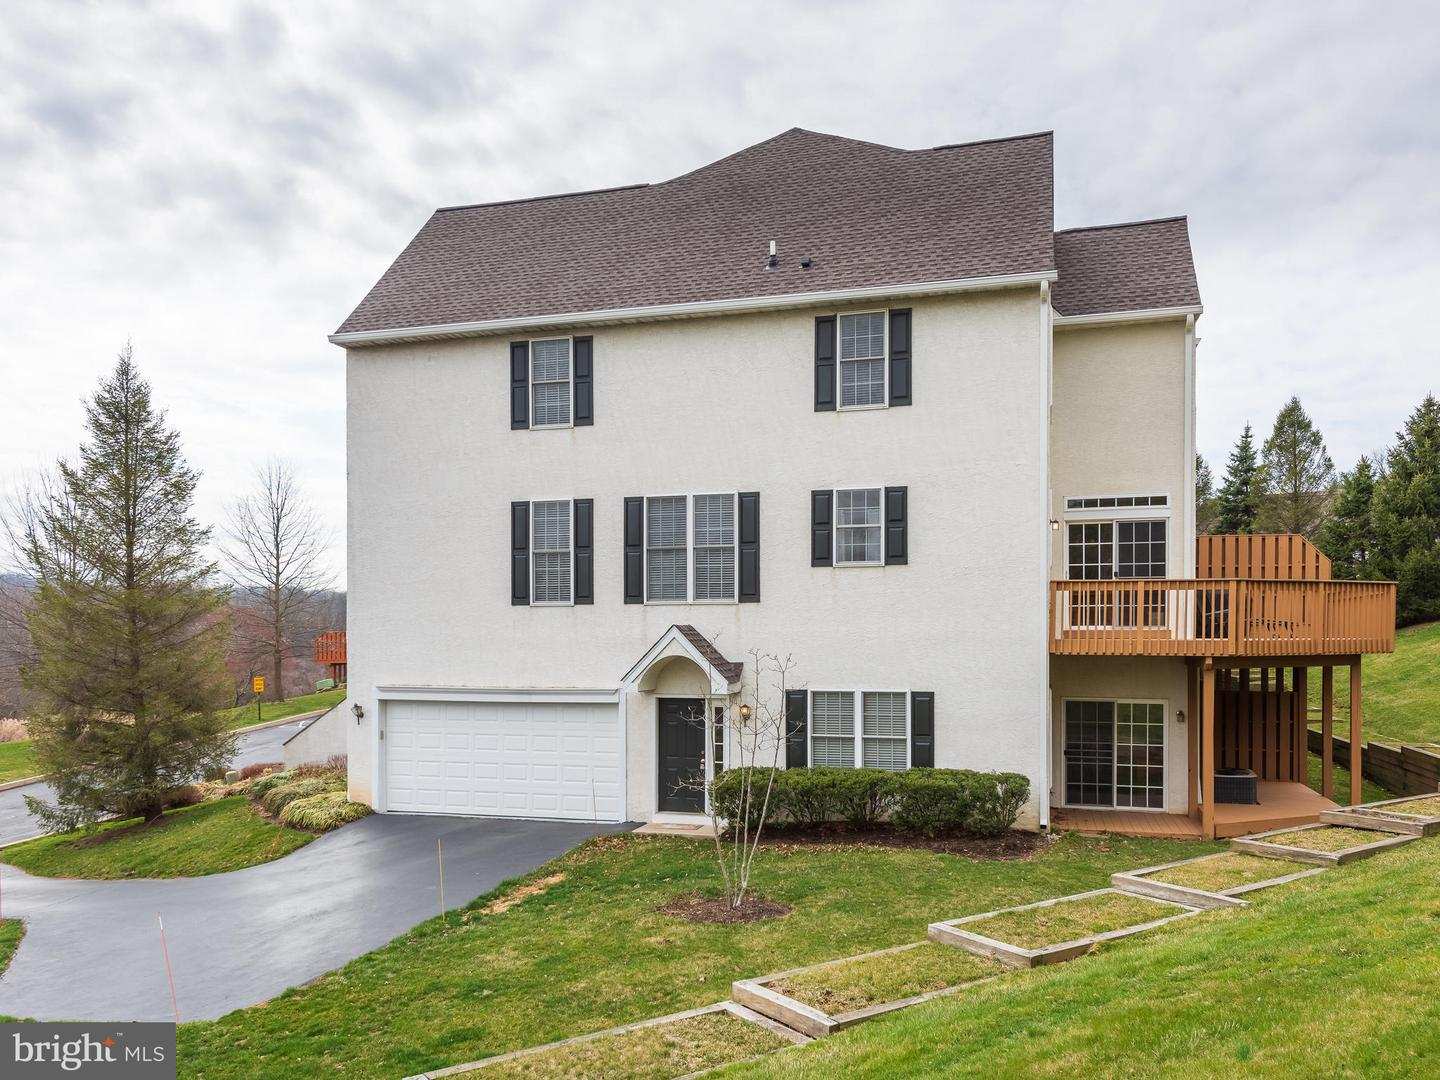 706 Whispering Brooke Drive Newtown Square, PA 19073